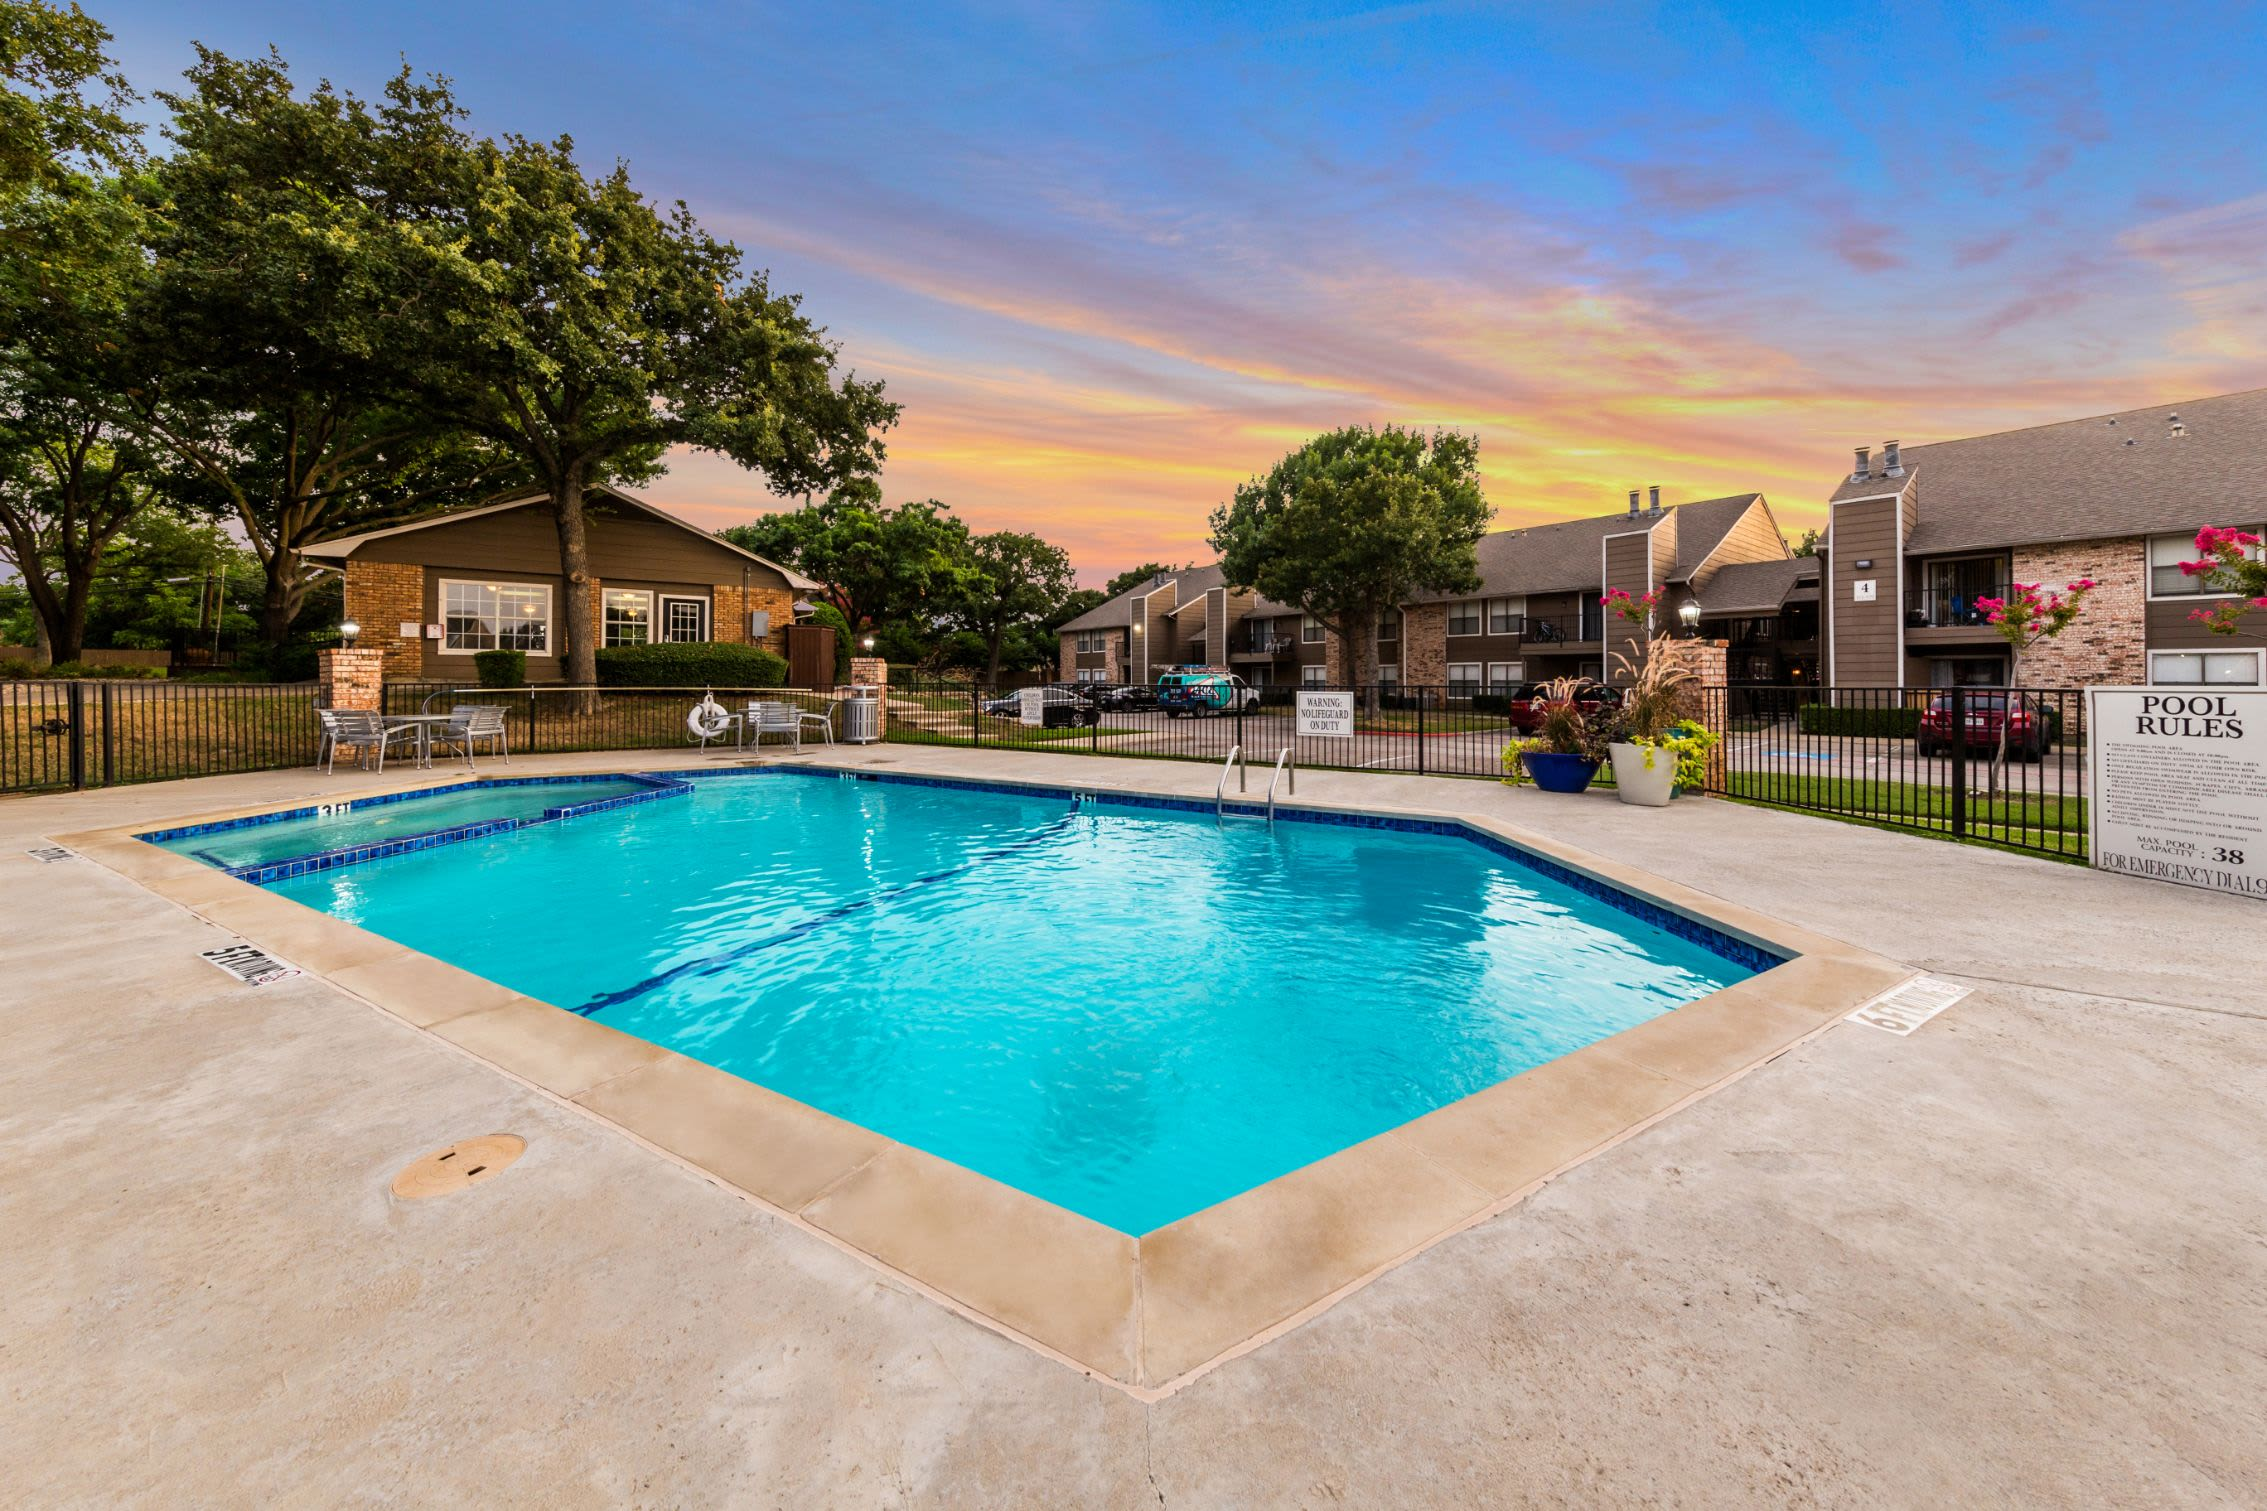 Sparkling pool with units in the background at The Park at Flower Mound in Flower Mound, Texas